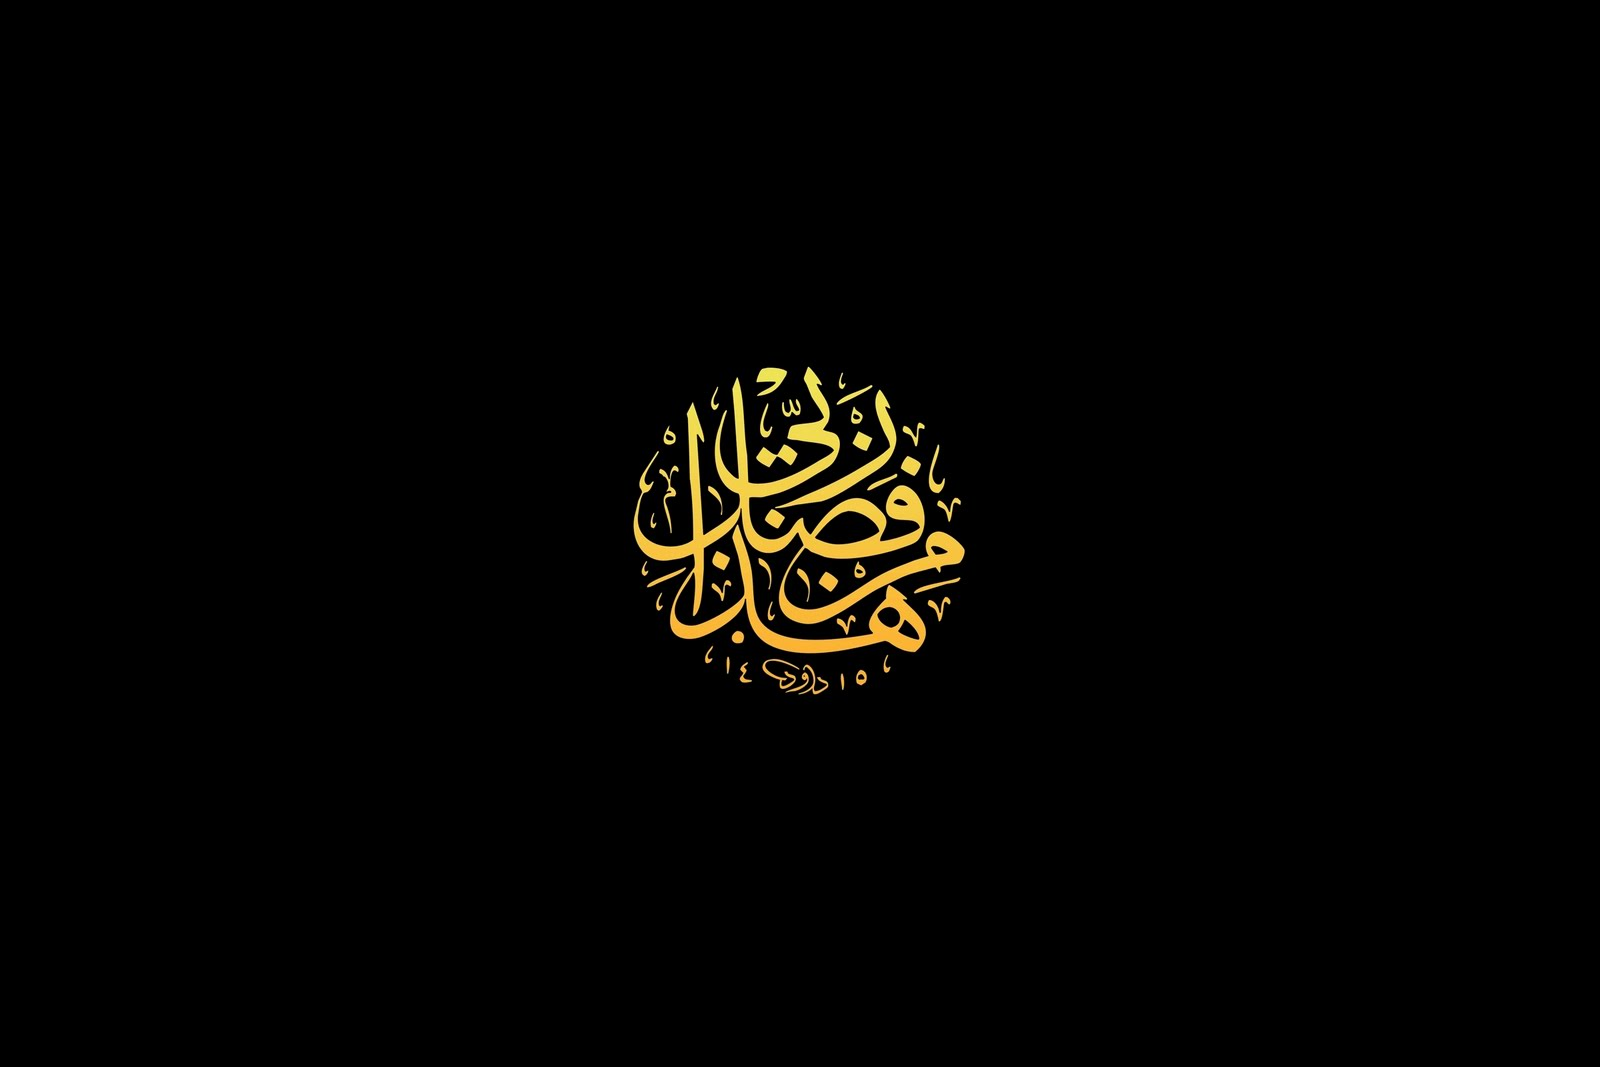 Islamic calligraphic wallpapers islamic quotes about islamic calligraphic wallpapers thecheapjerseys Choice Image